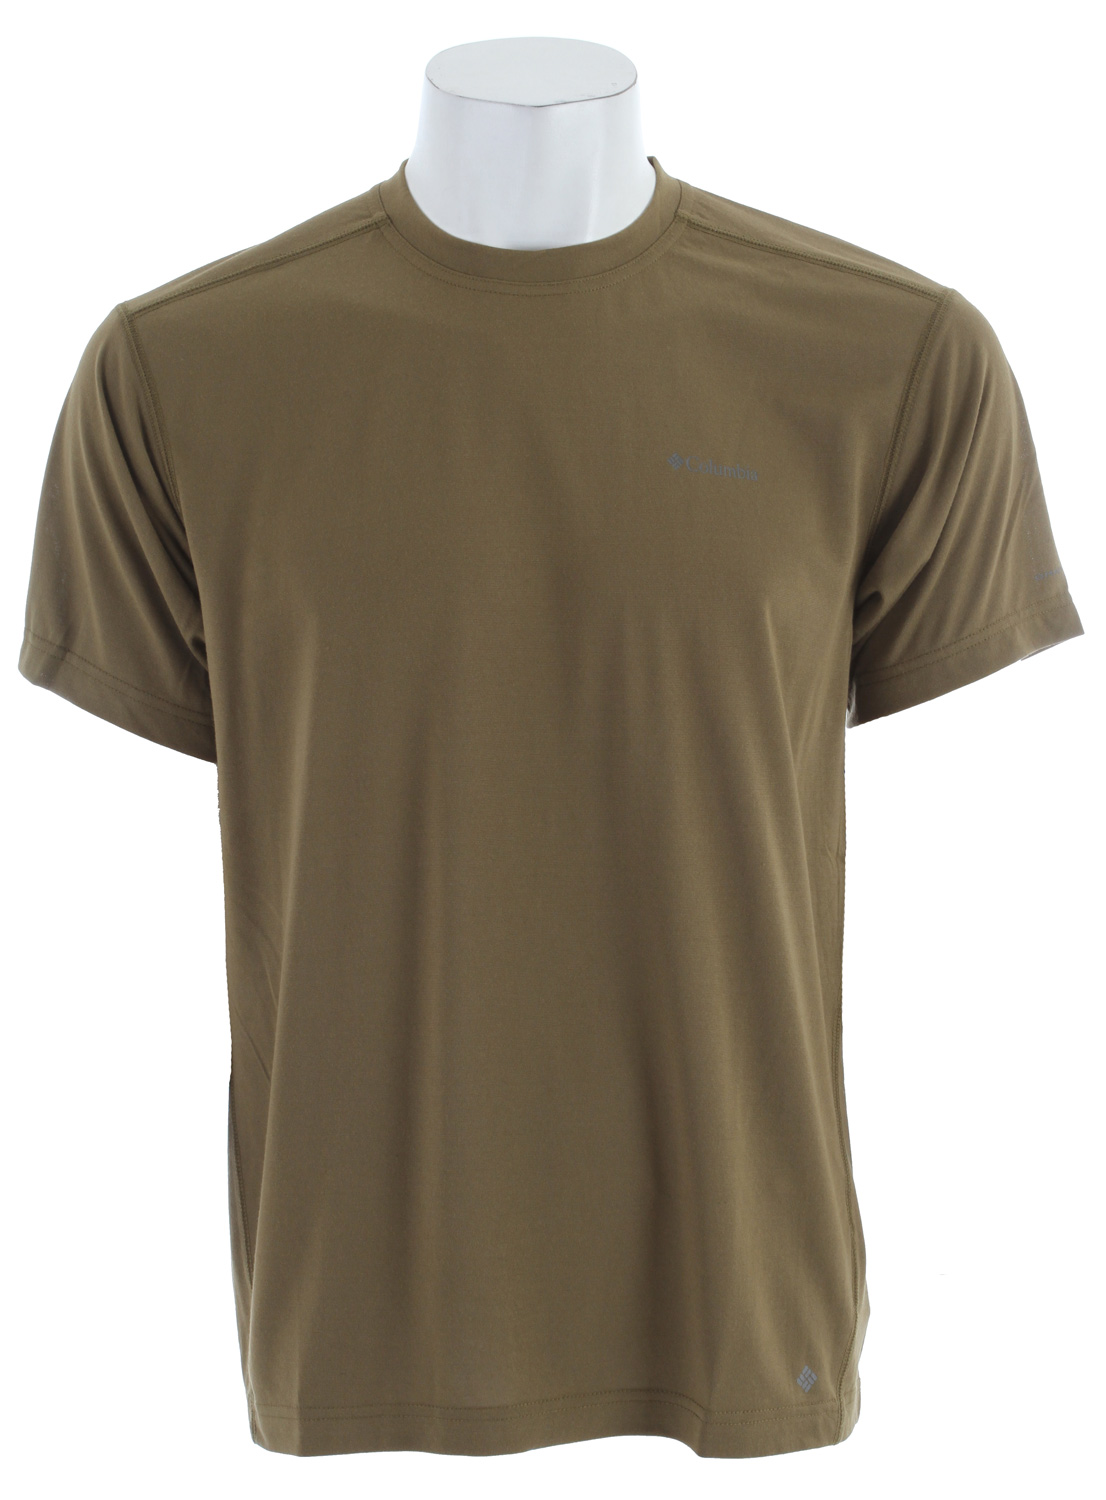 Key Features of the Columbia Mountain Tech II Crew Base Layer Shirt: 100% polyester jersey Omni-Wick™ UPF 15 sun protection Antimicrobial - $19.95